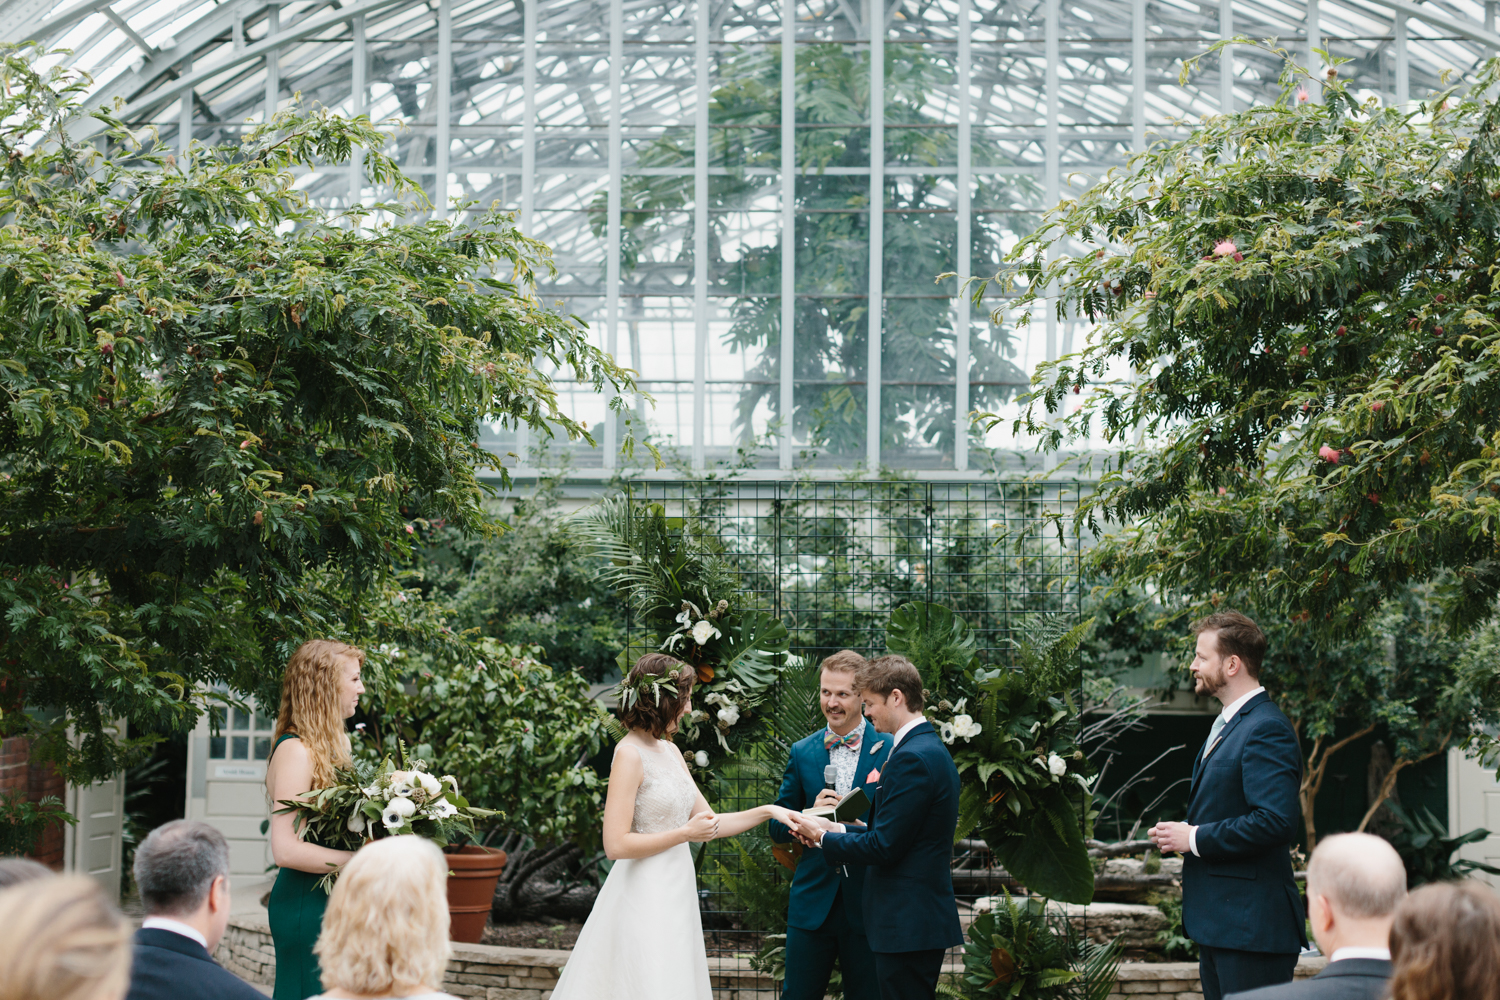 Chicago Garfield Park Conservatory Wedding by Northern Michigan Photographer Mae Stier-065.jpg